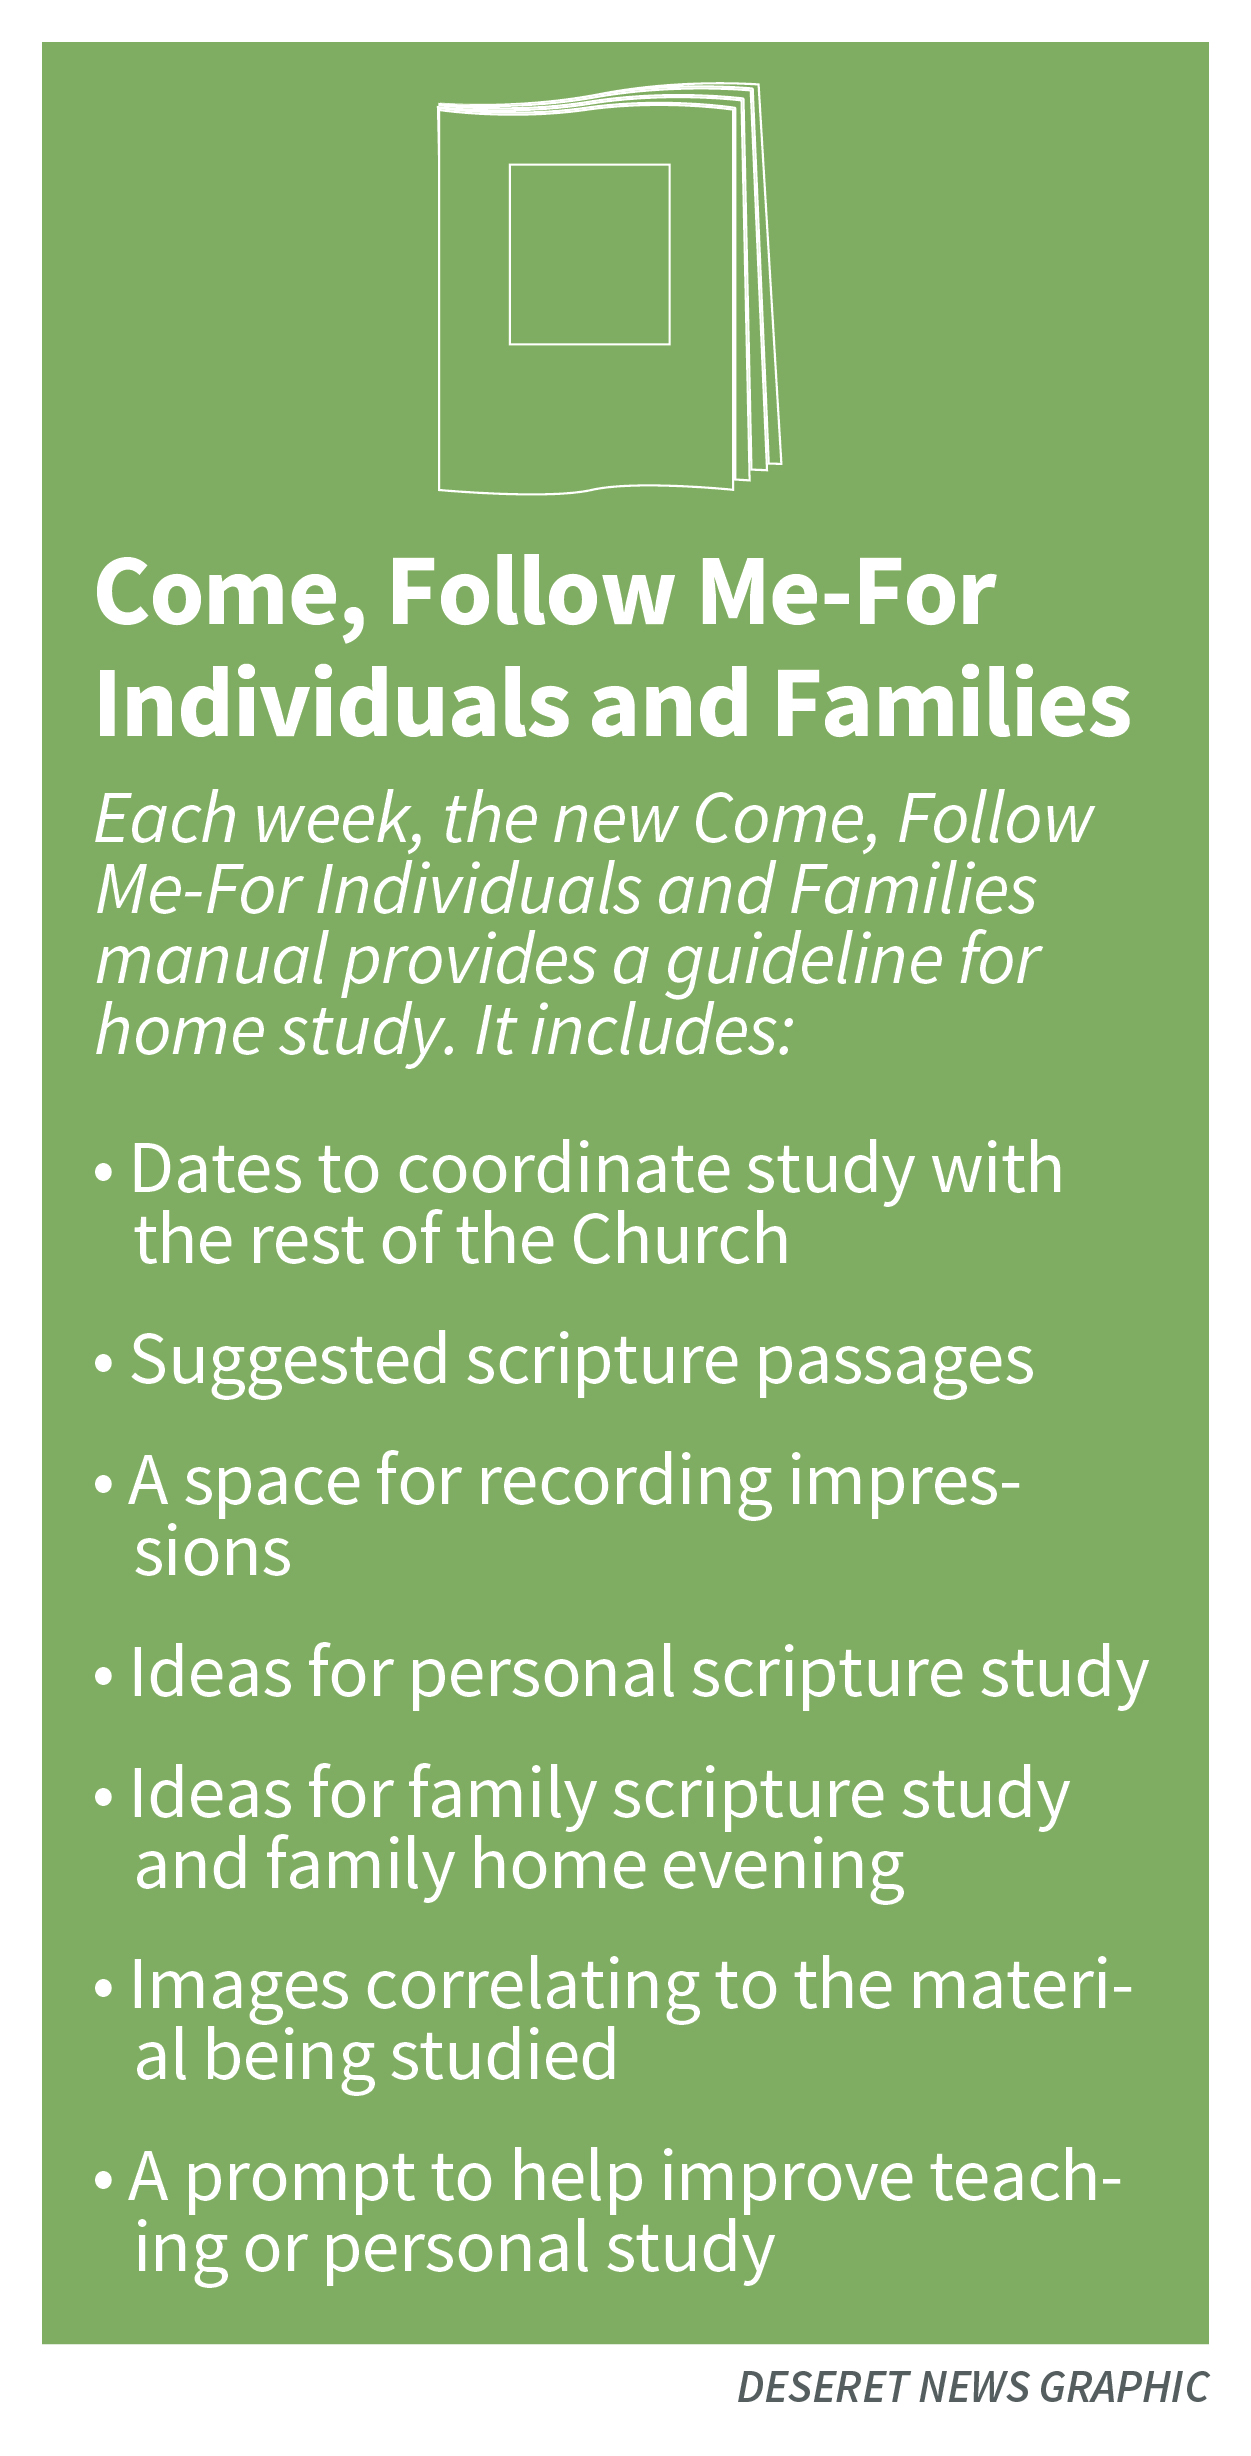 Each week, the new Come, Follow Me-For Individuals and Families manual provides a guideline for home study. It includes: